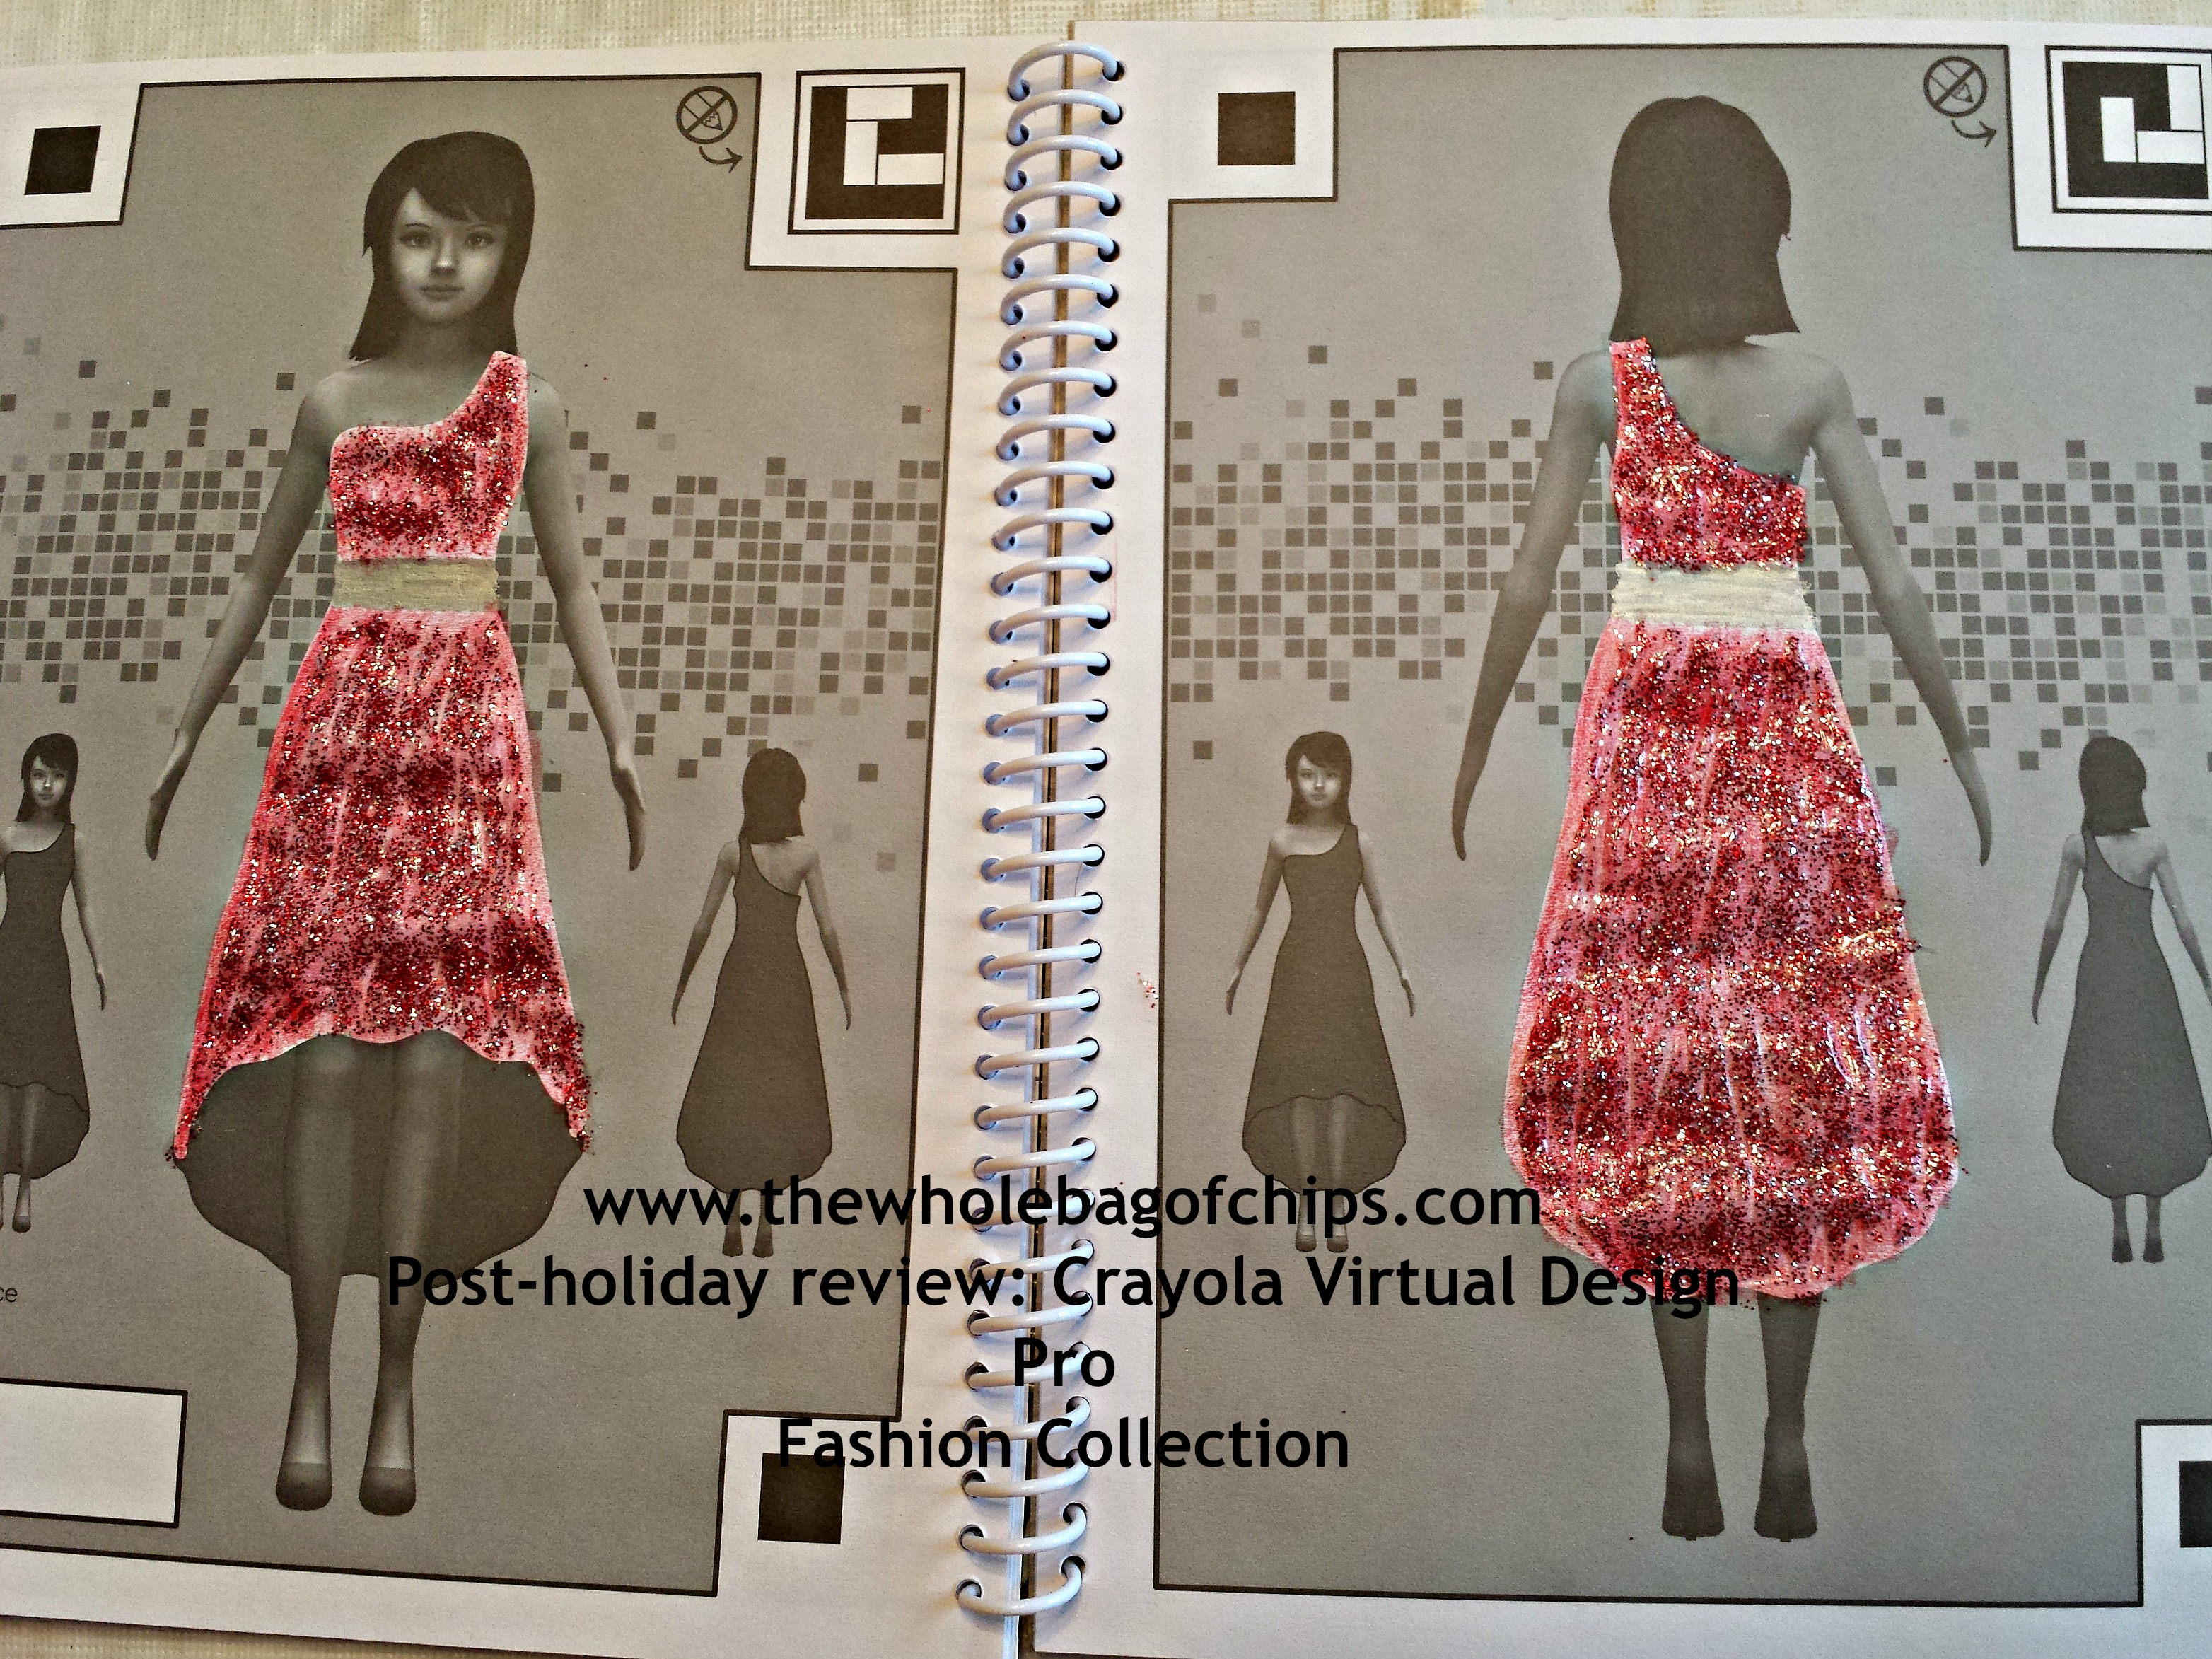 Crayola Fashion Show Download Designing on paper is only the